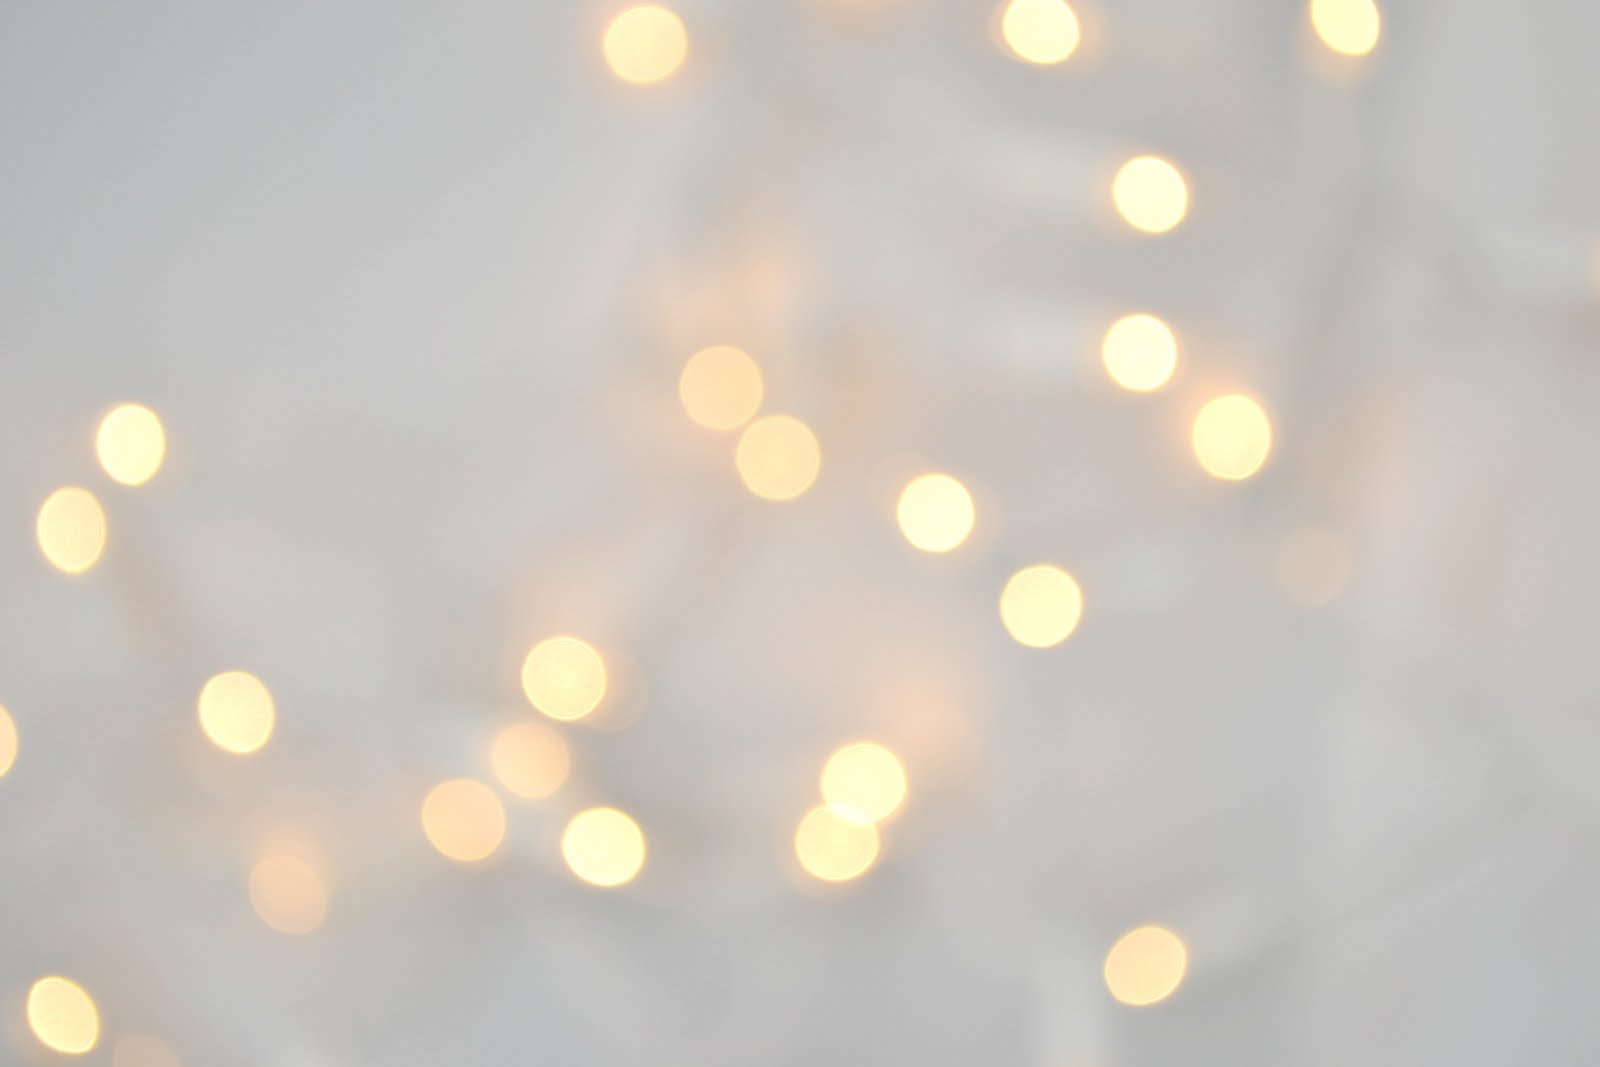 White Christmas Lights Wallpaper - WallpaperSafari